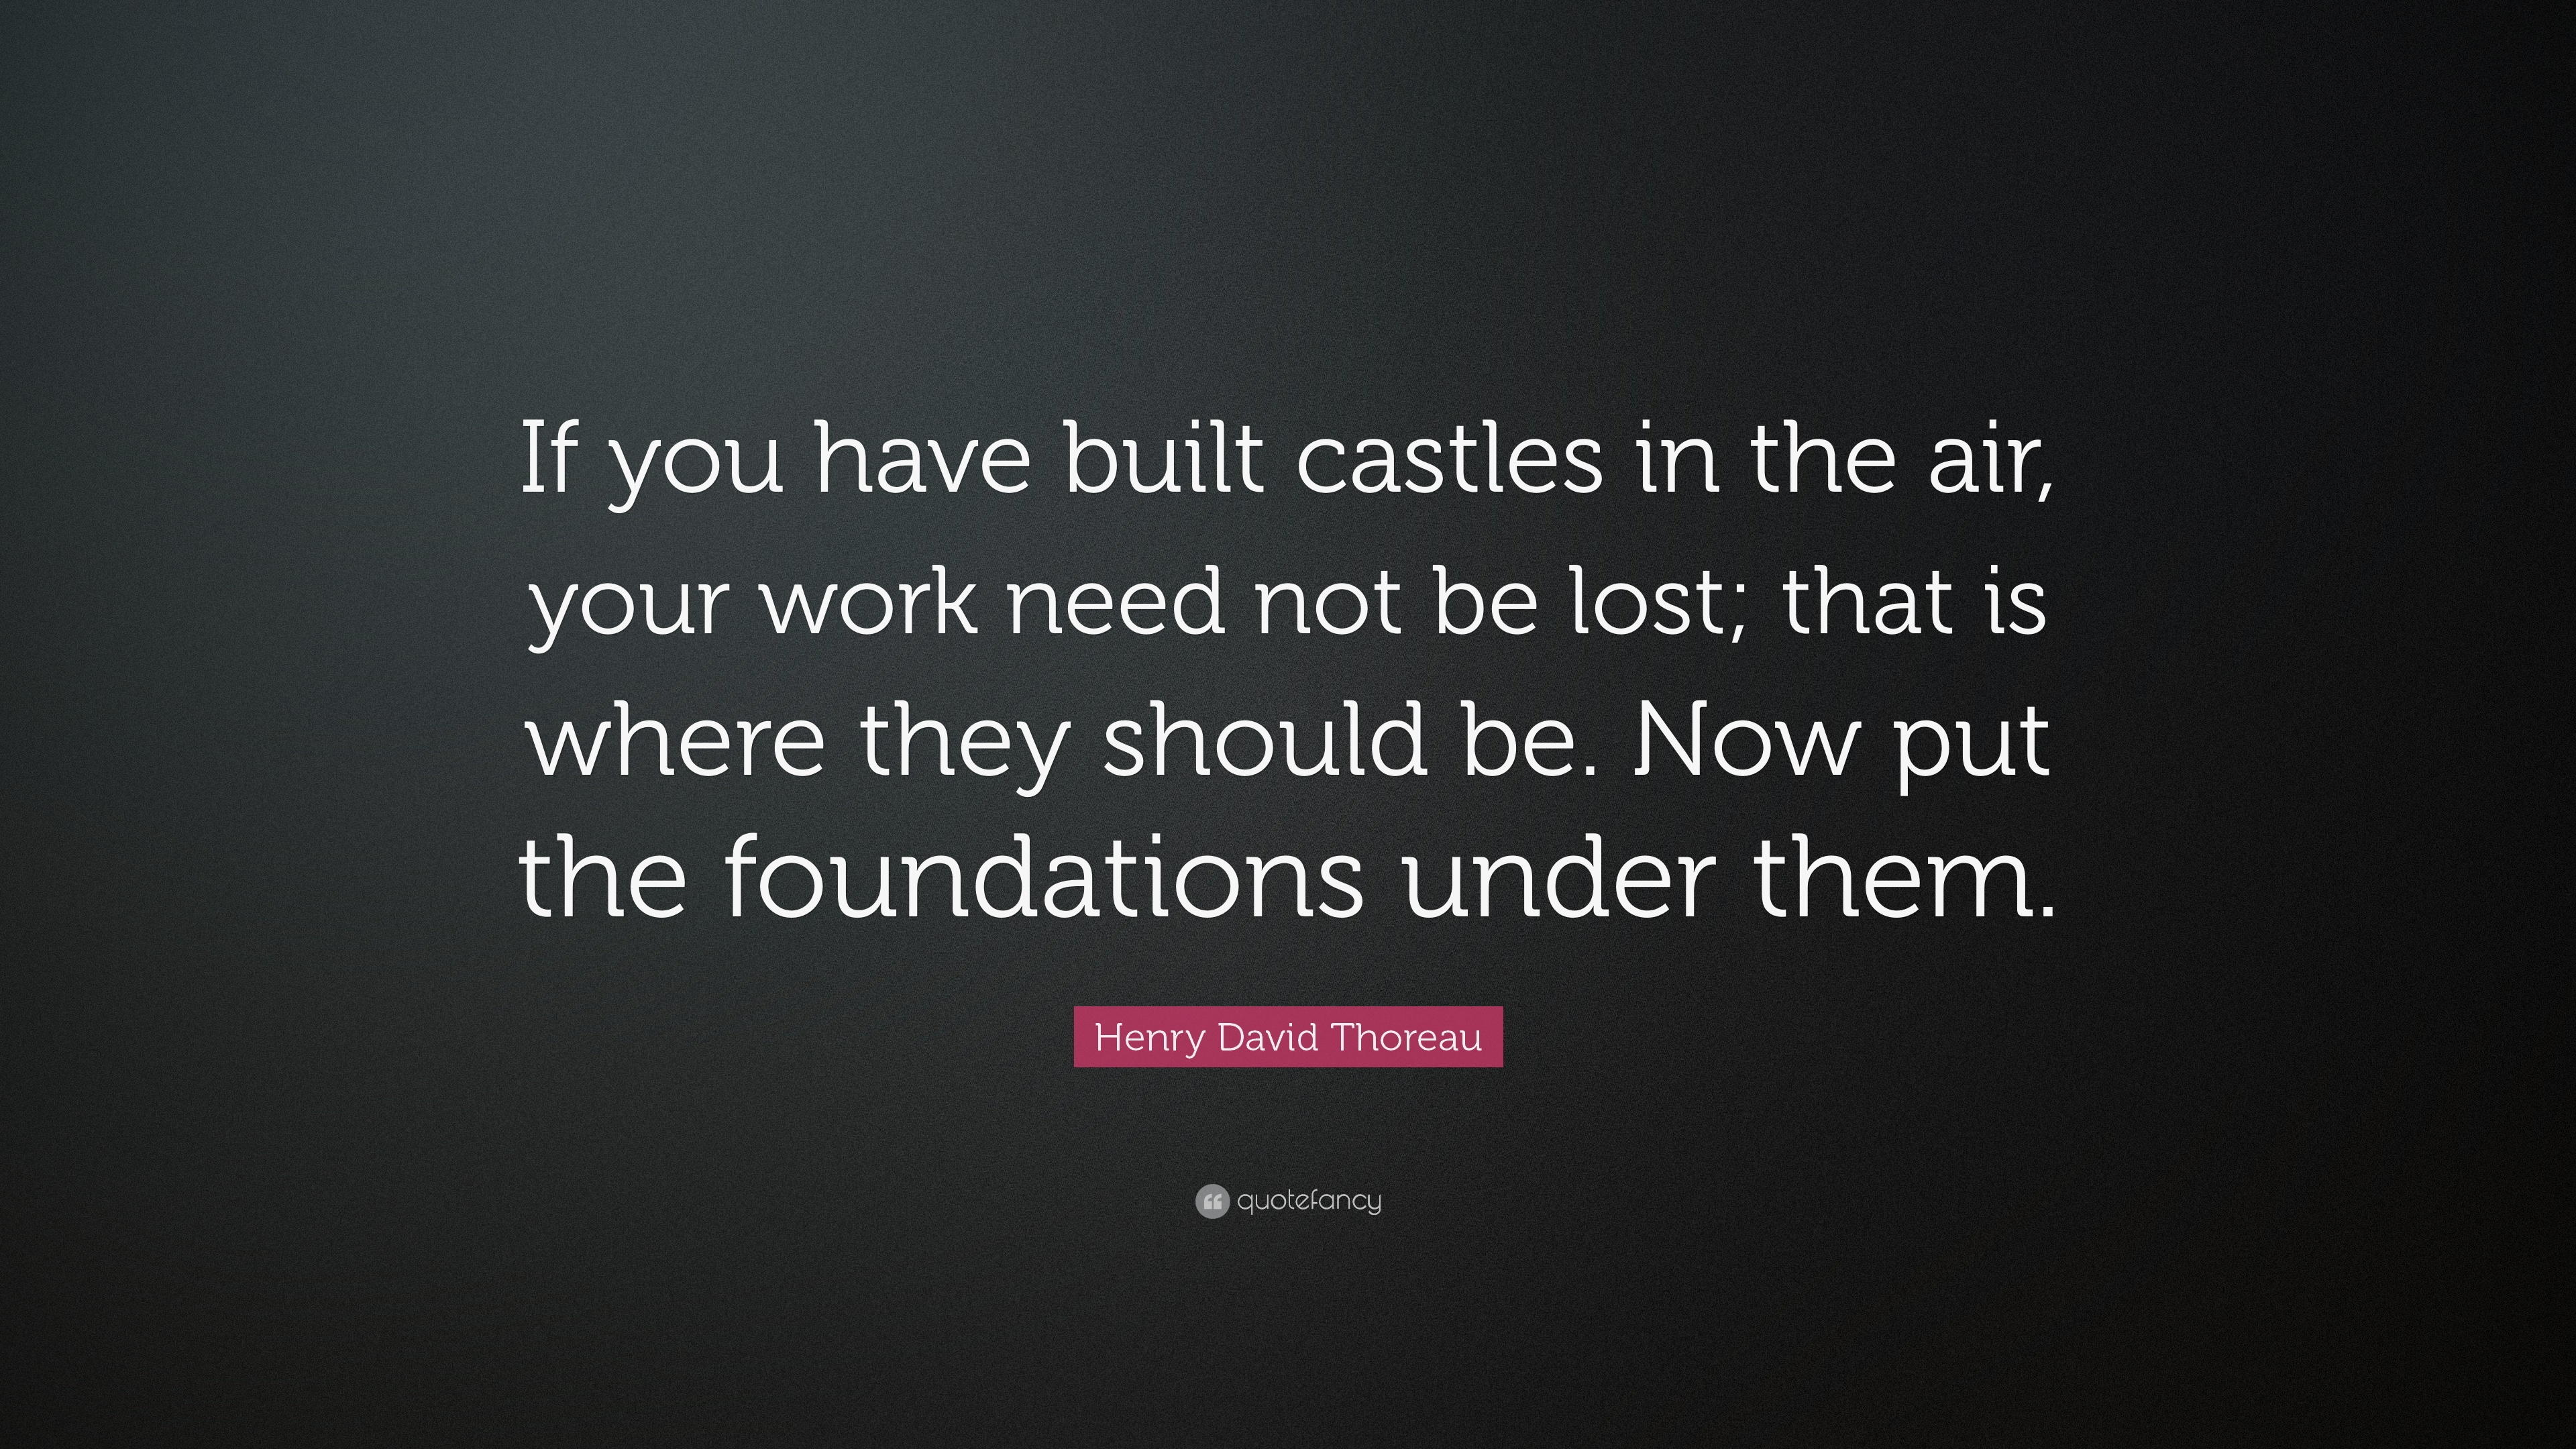 Quotes About Castles Quotes About Castles Adorable Castles Quotes Castles Sayings